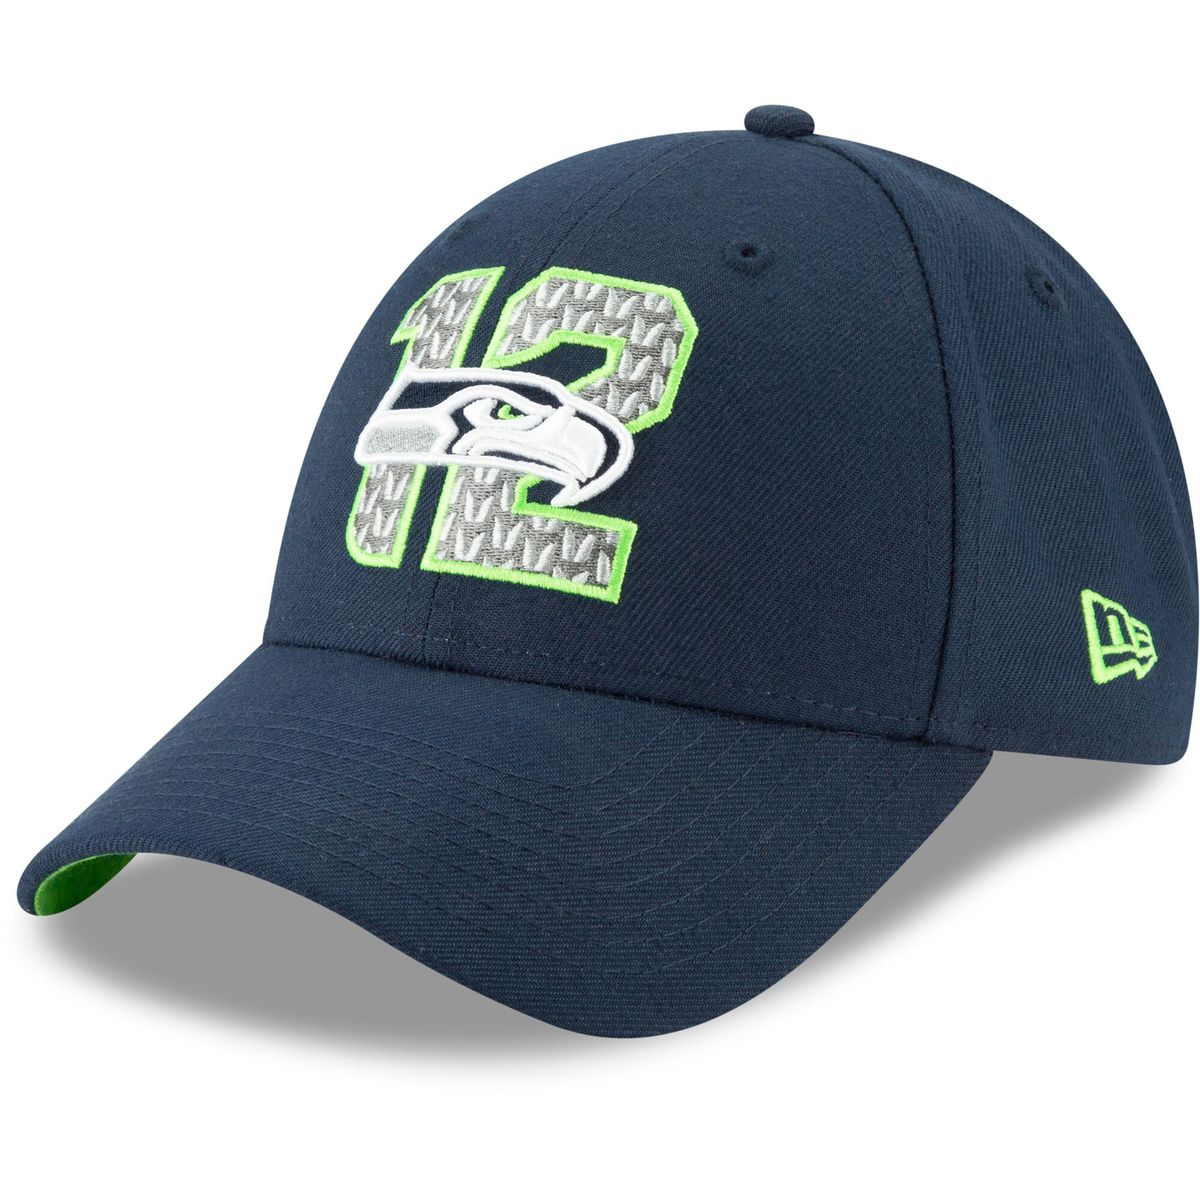 1c2192665 The New Era 2019 NFL Draft hats drop with new looks for every team ...